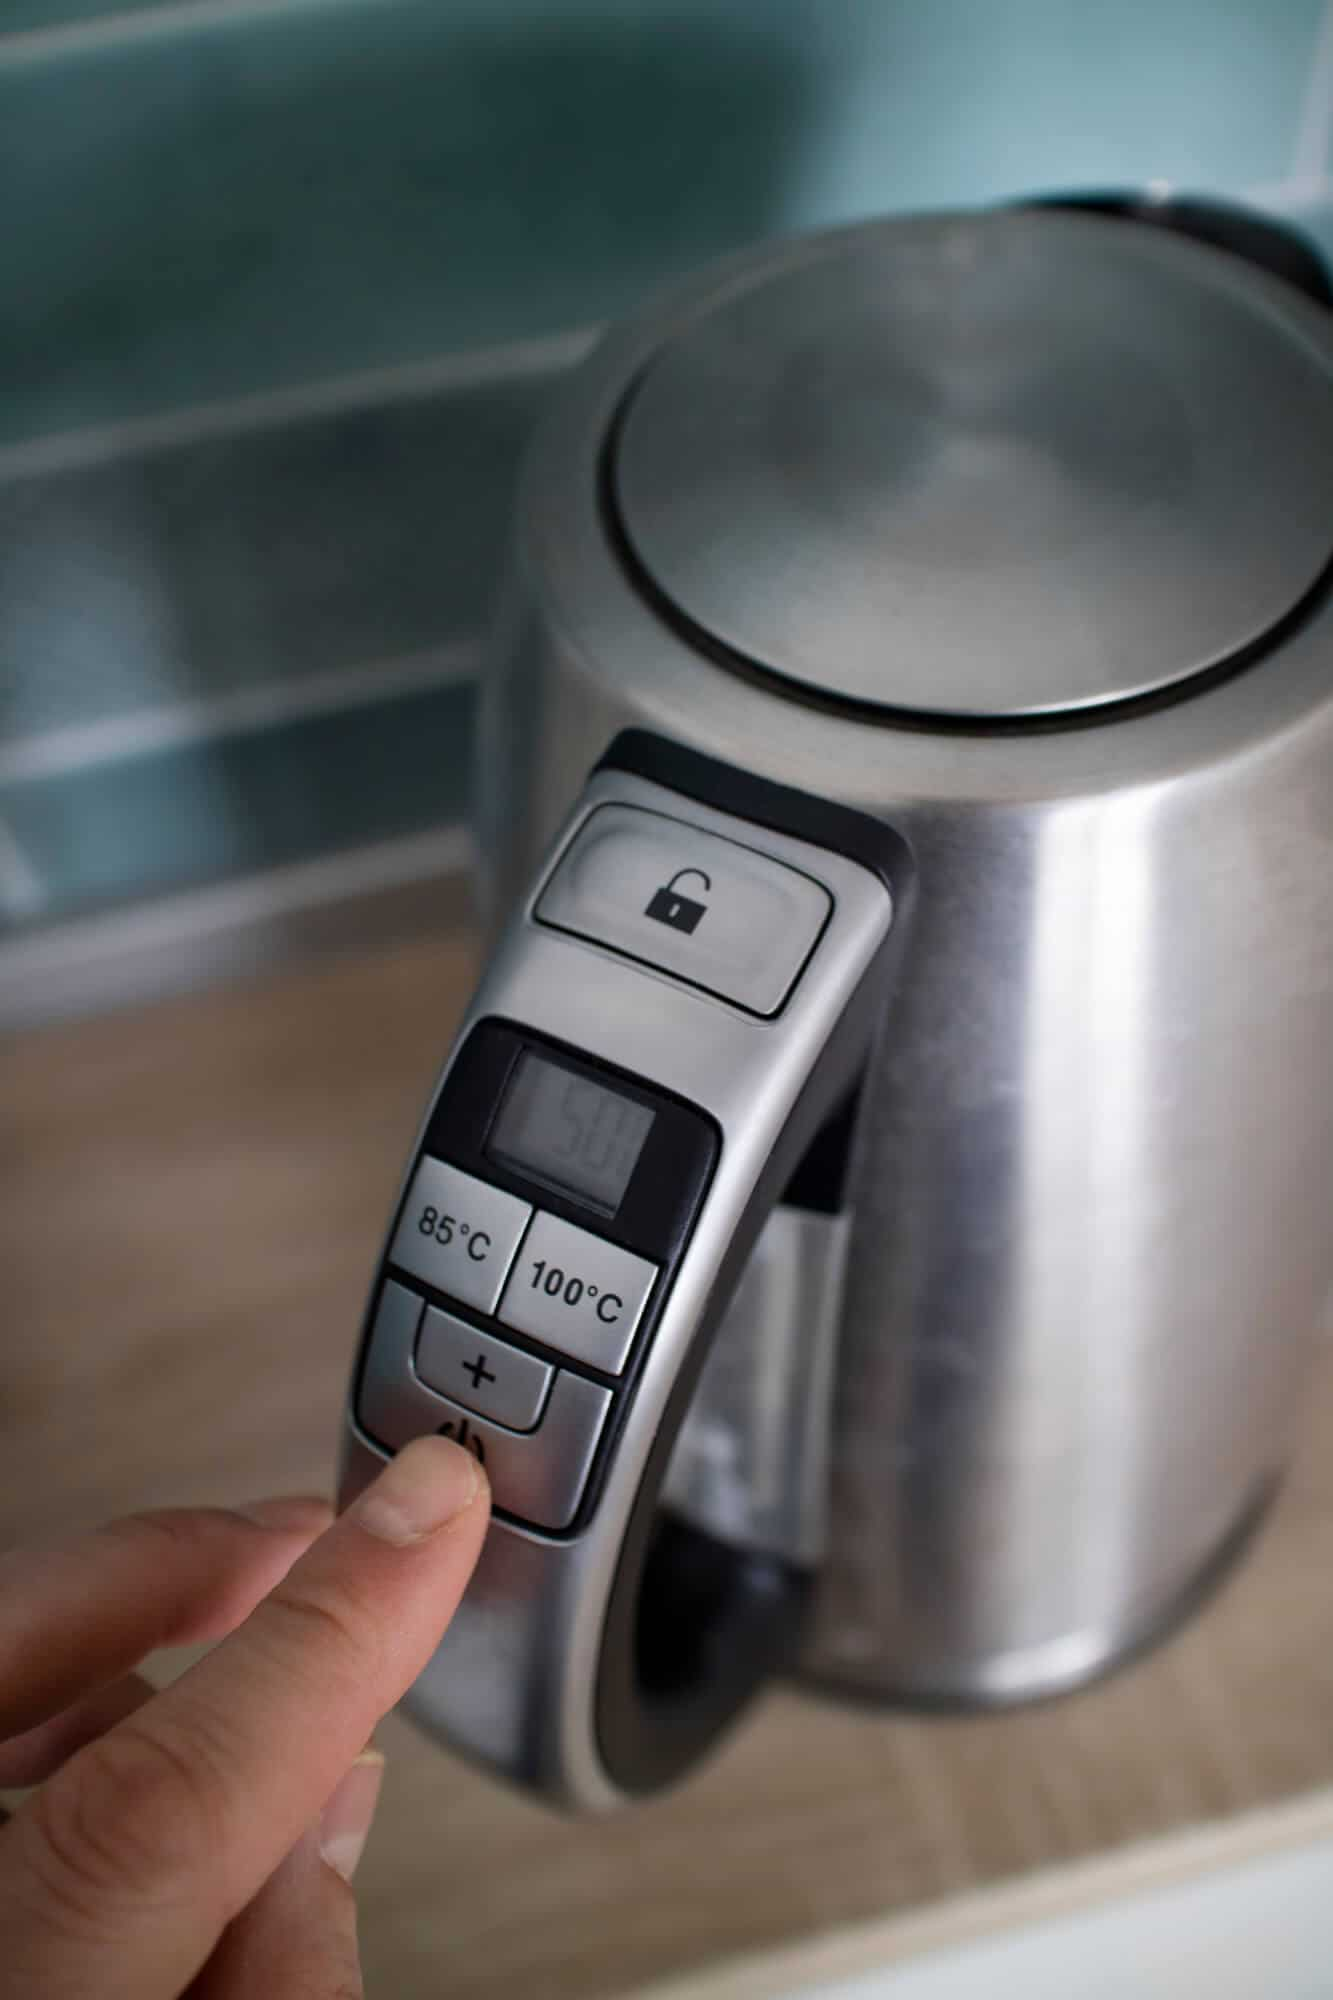 electric kettle on a countertop with temperature control buttons